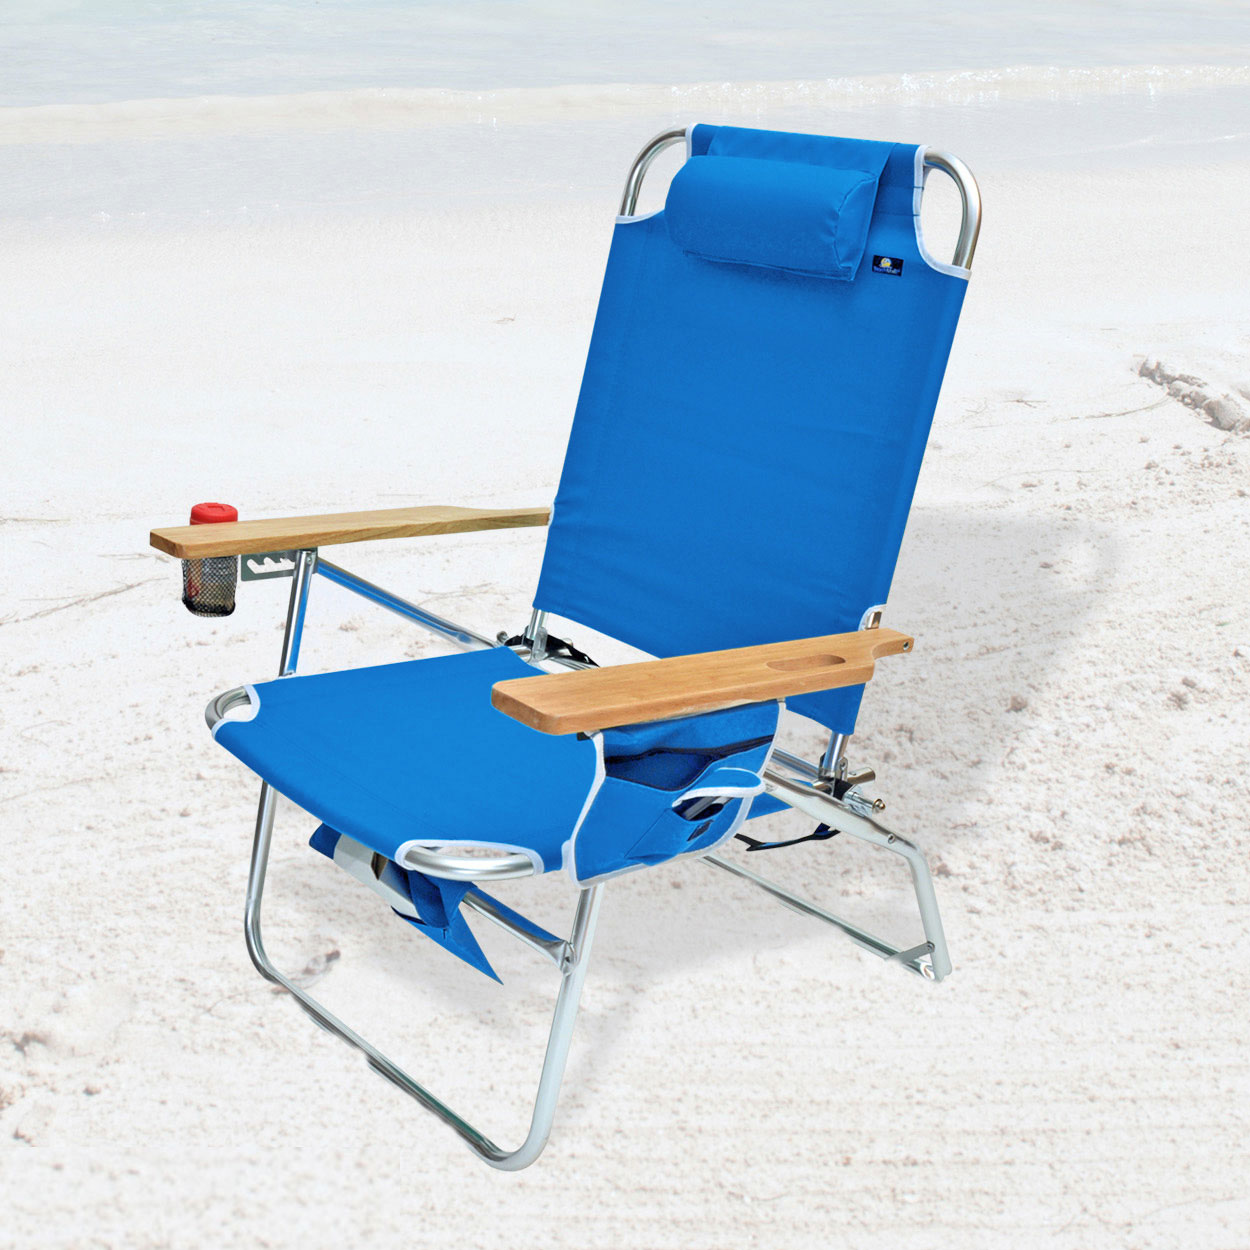 Heavy Duty Lounge Chair Big Jumbo Heavy Duty 500 Lbs Xl Aluminum Beach Chair For